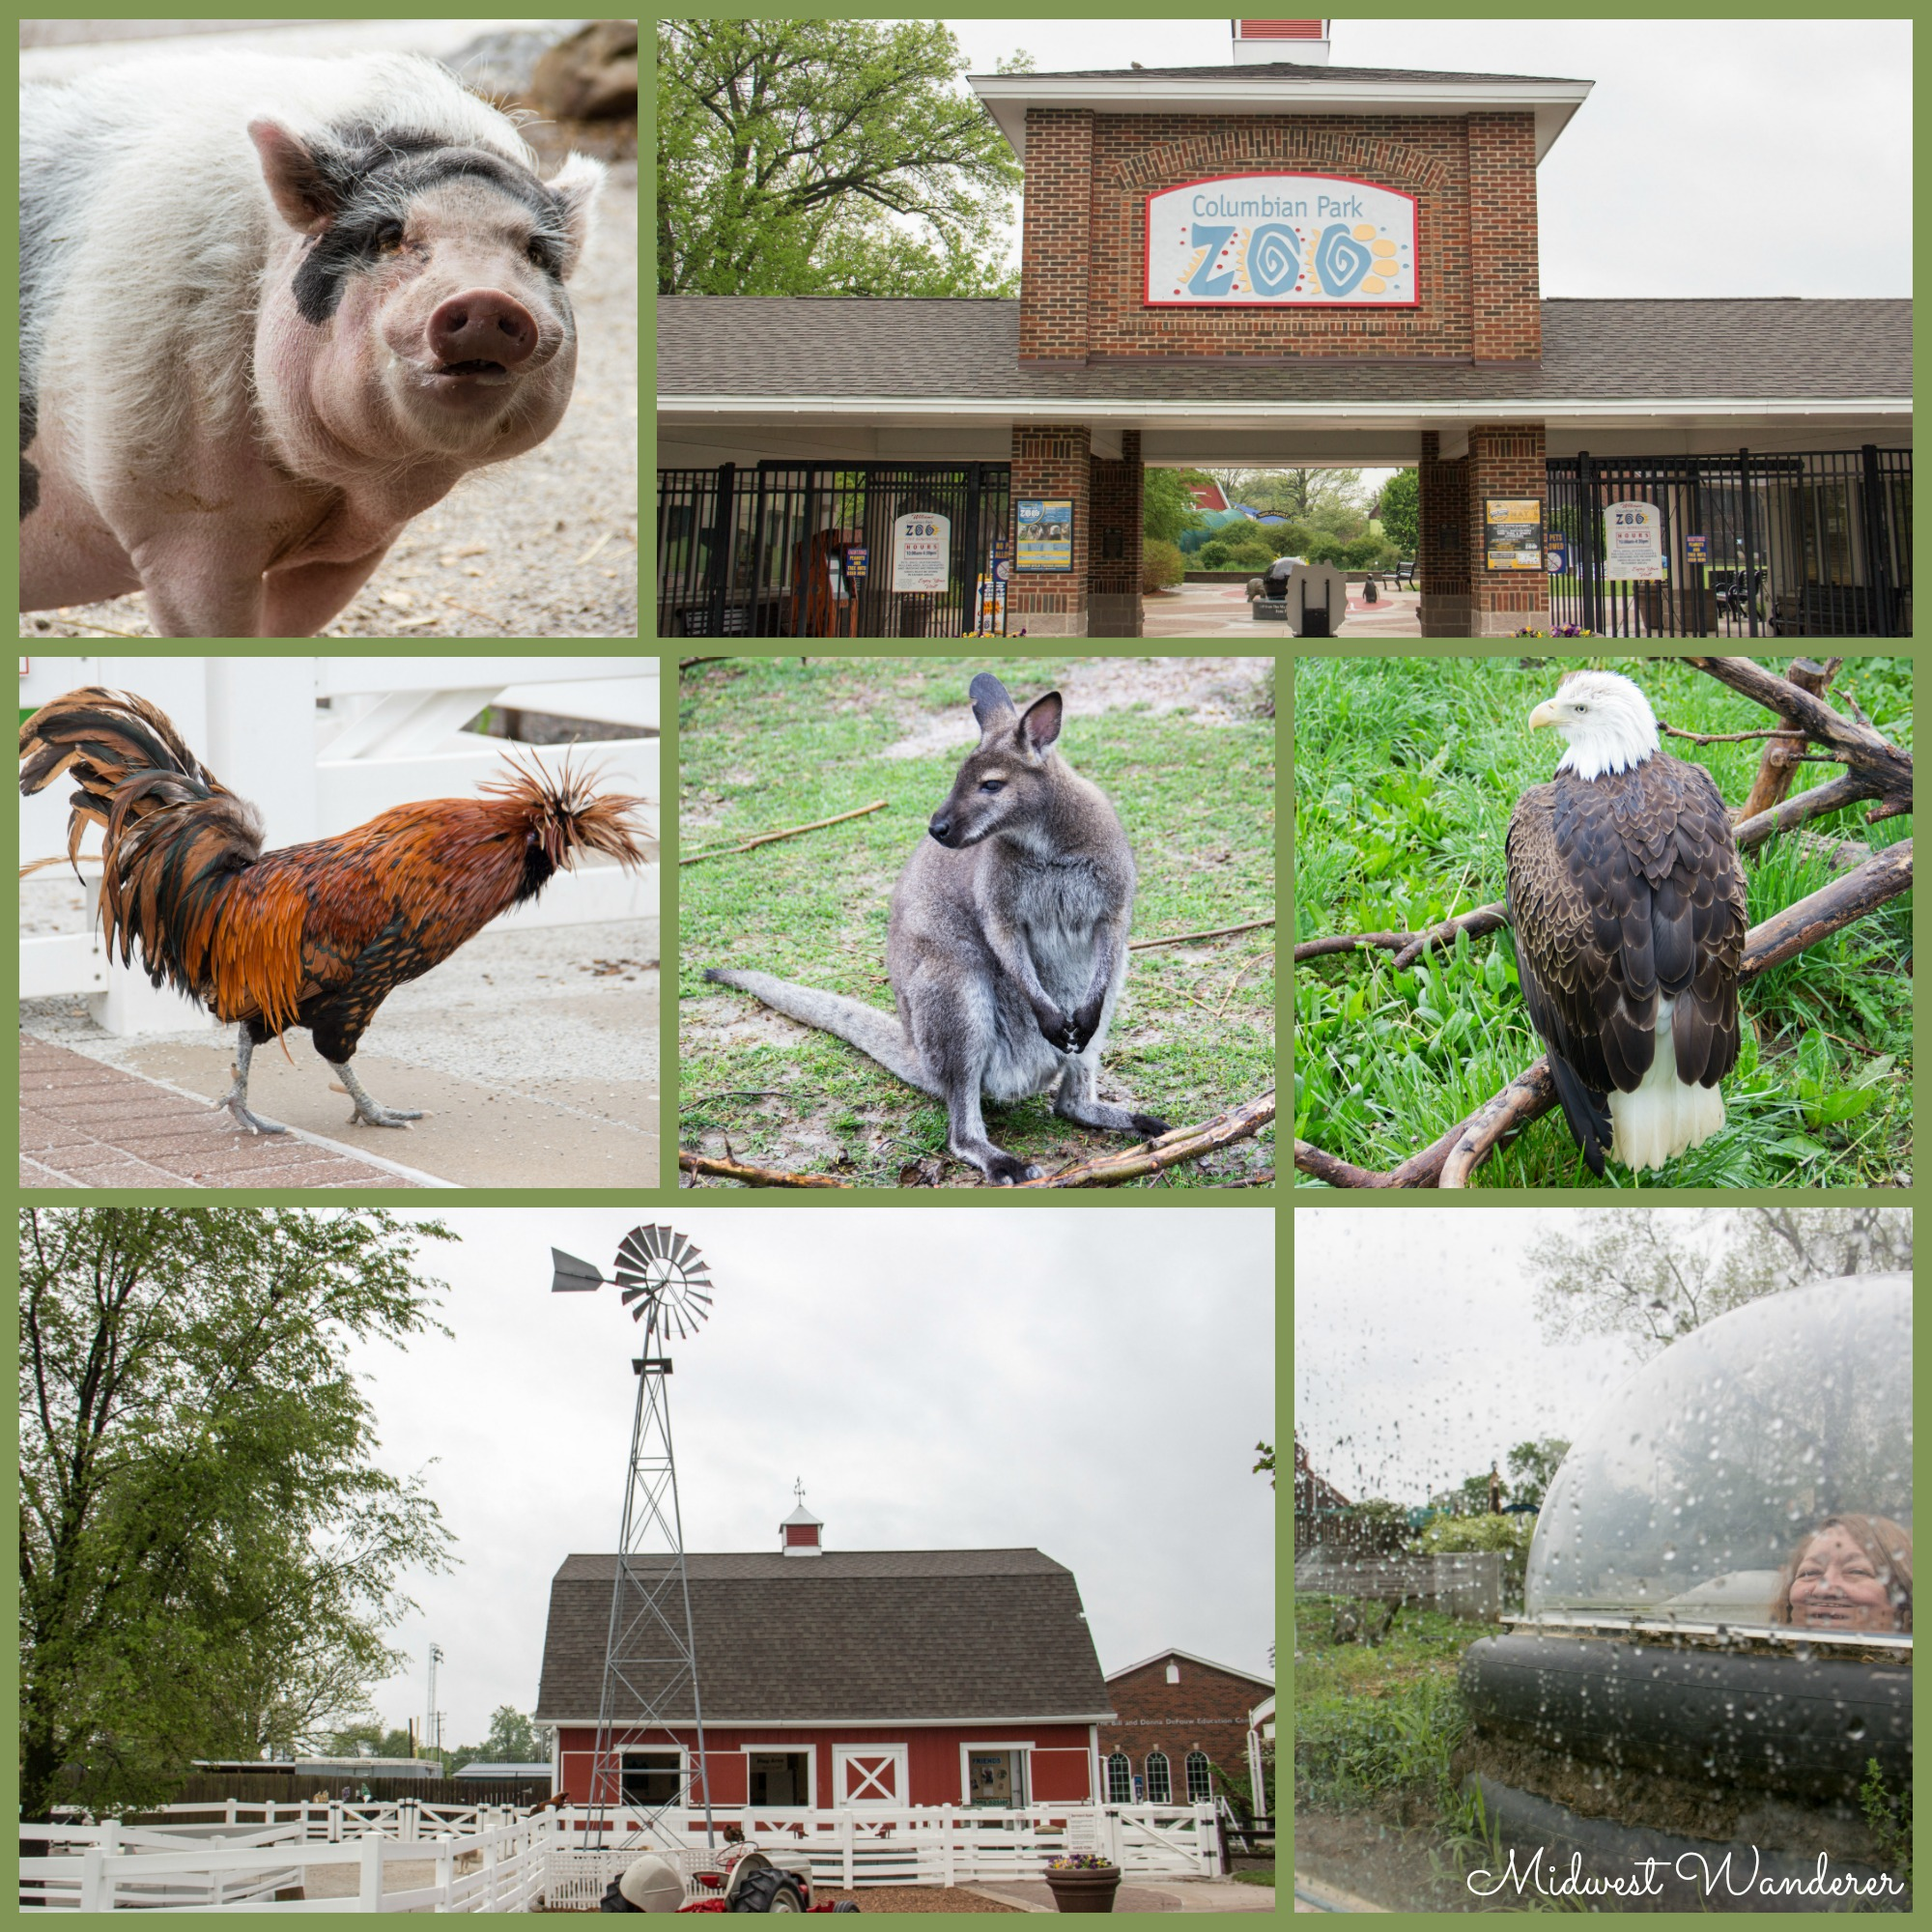 Columbian Park Zoo - Small Midwest Zoos